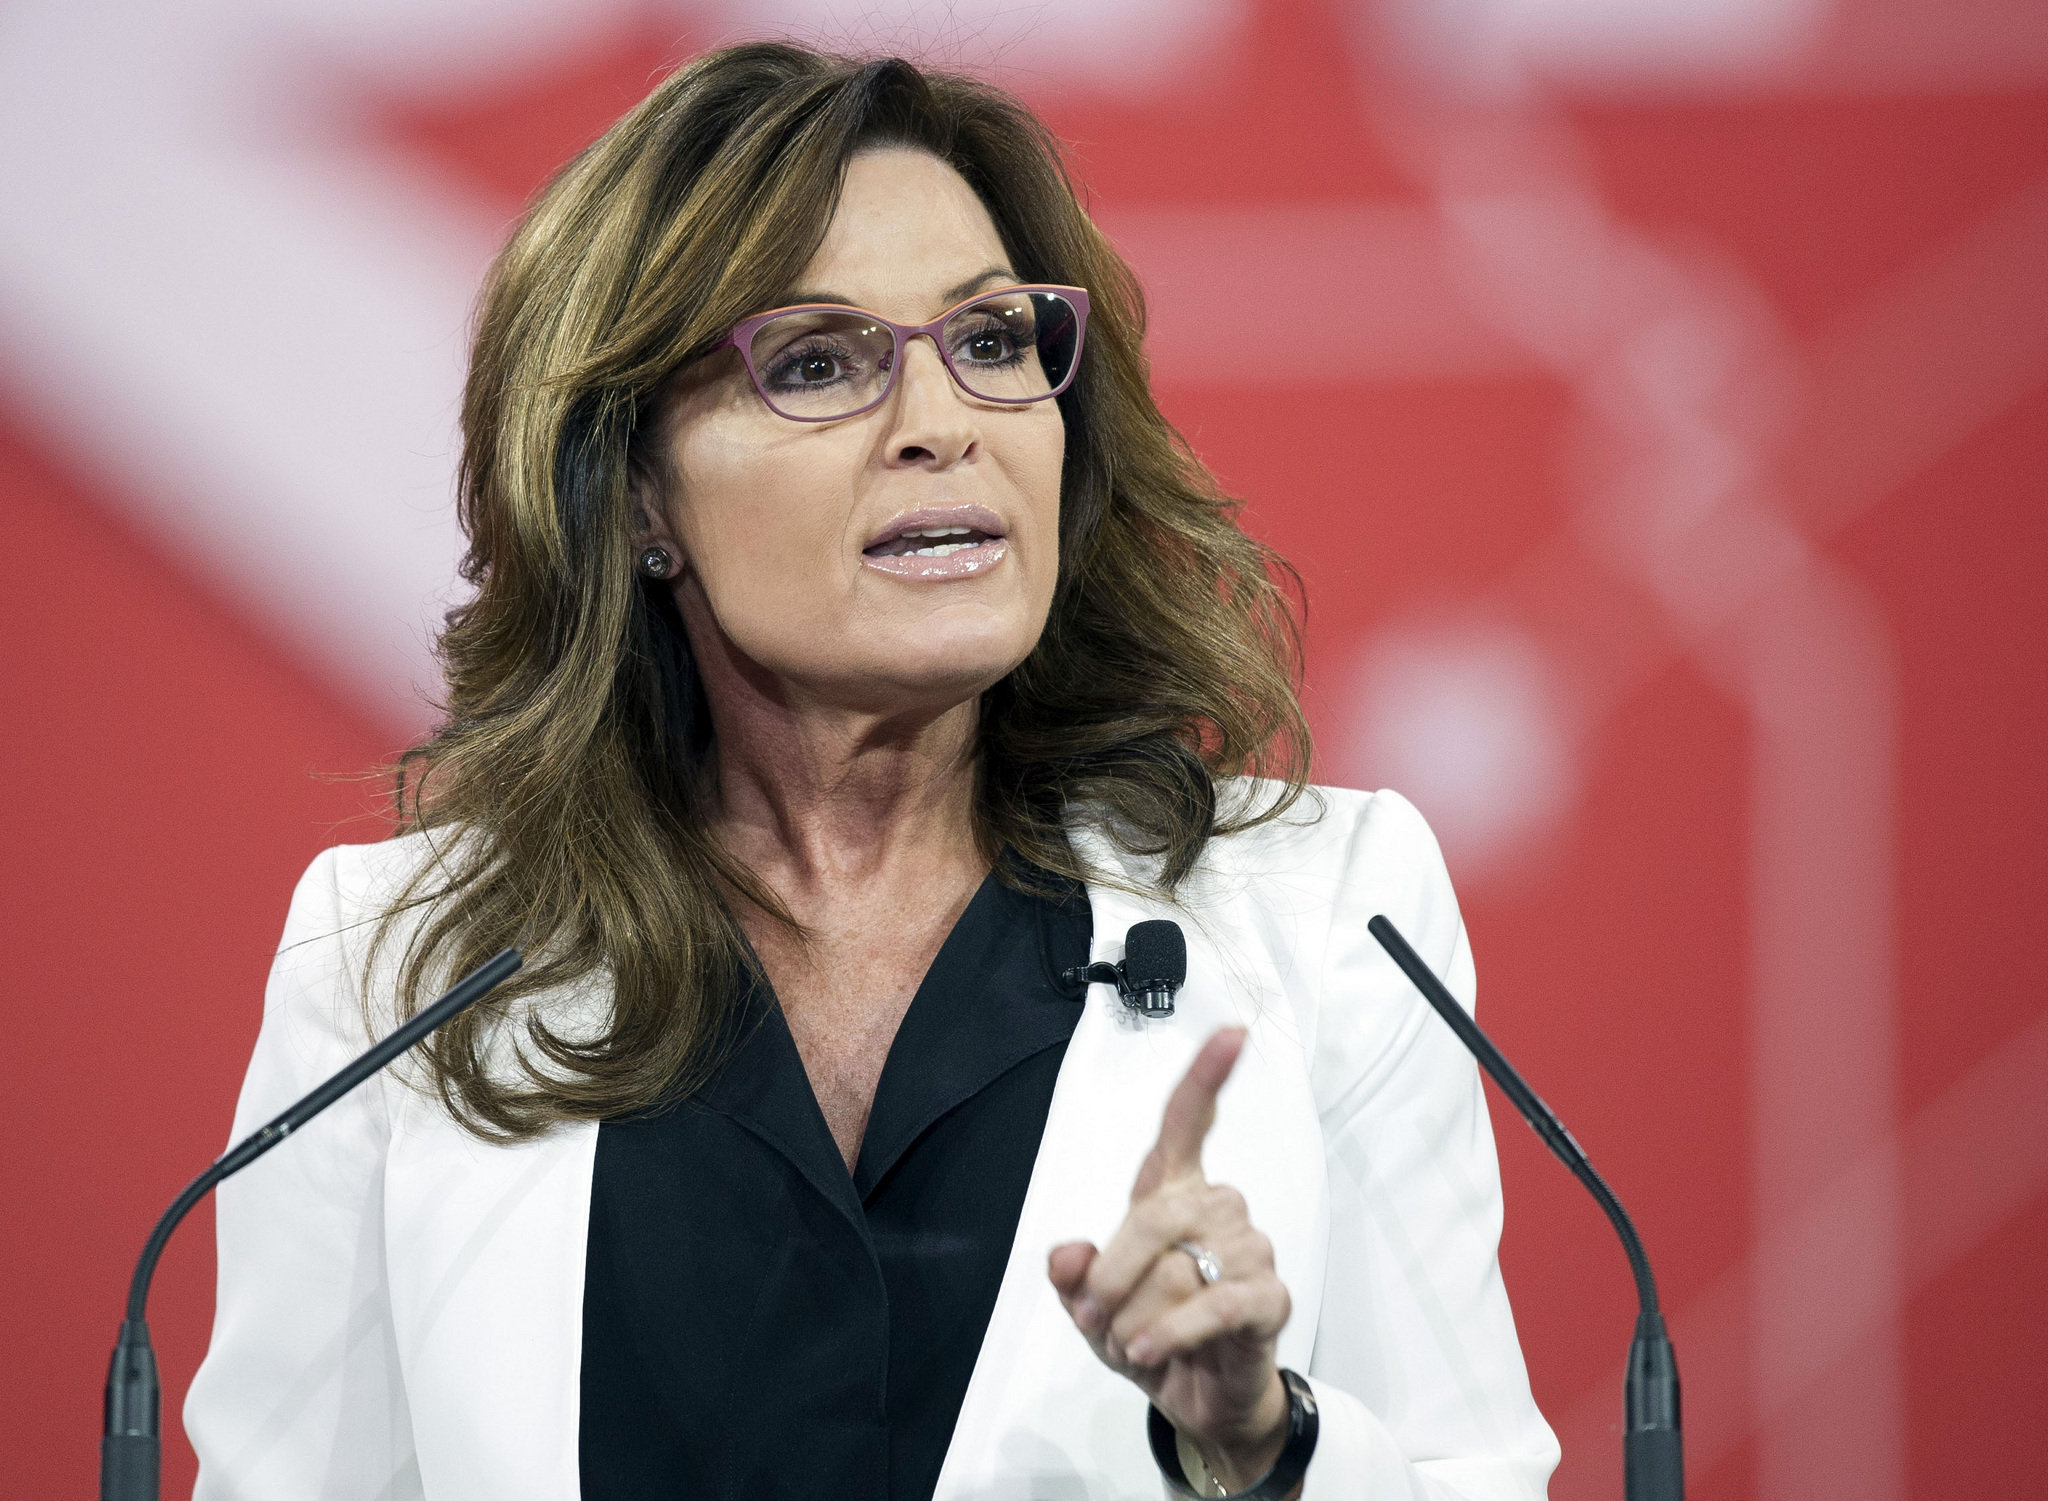 Palin on Trump VP talk: 'I want to help and not hurt'